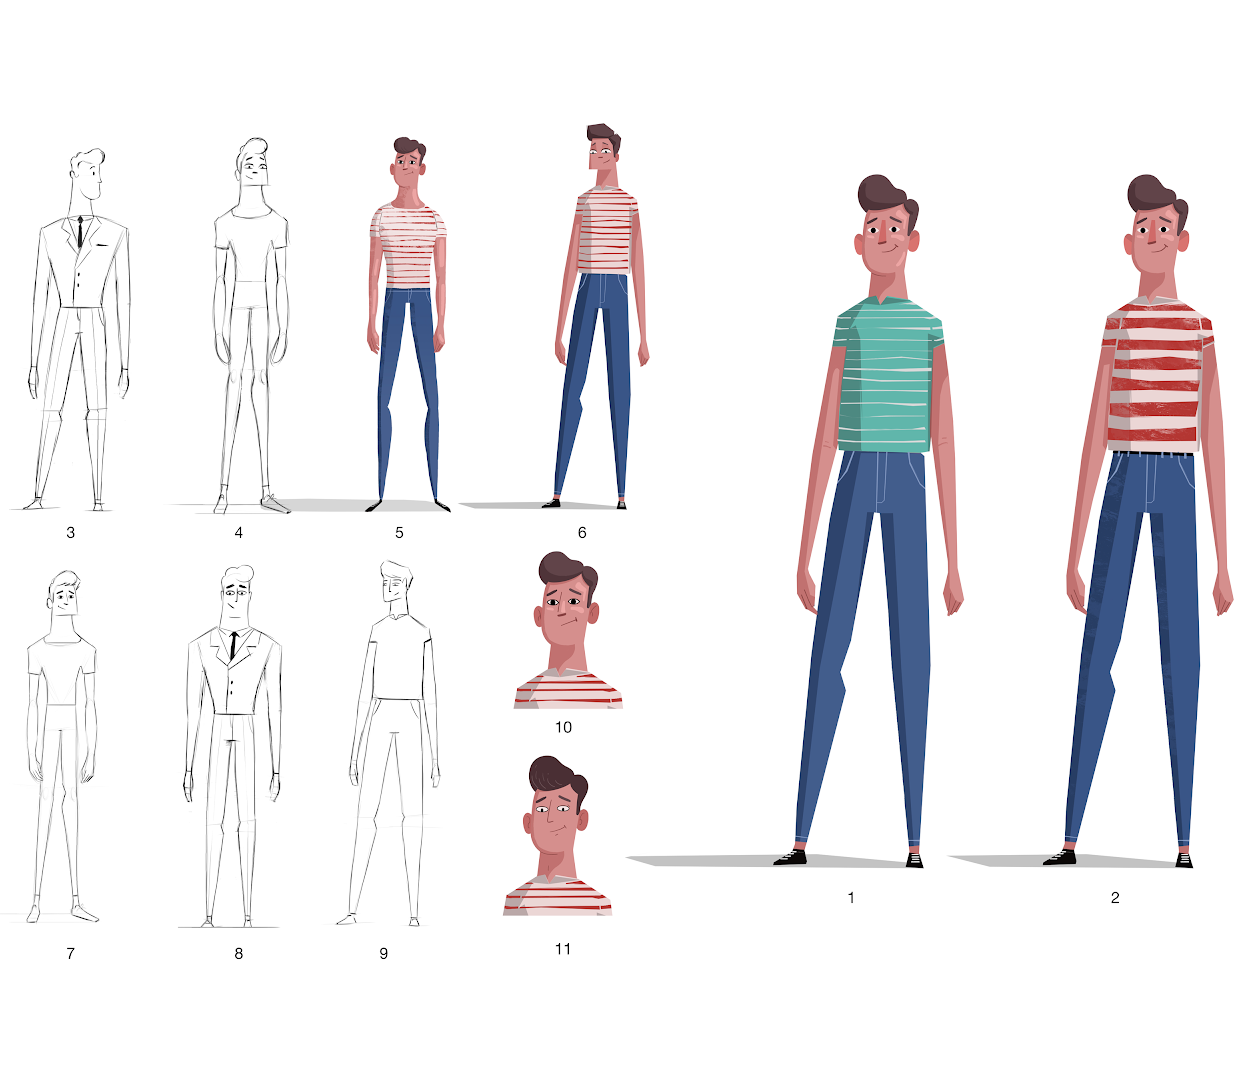 Wrapify_character_design_v05_web_FH.png